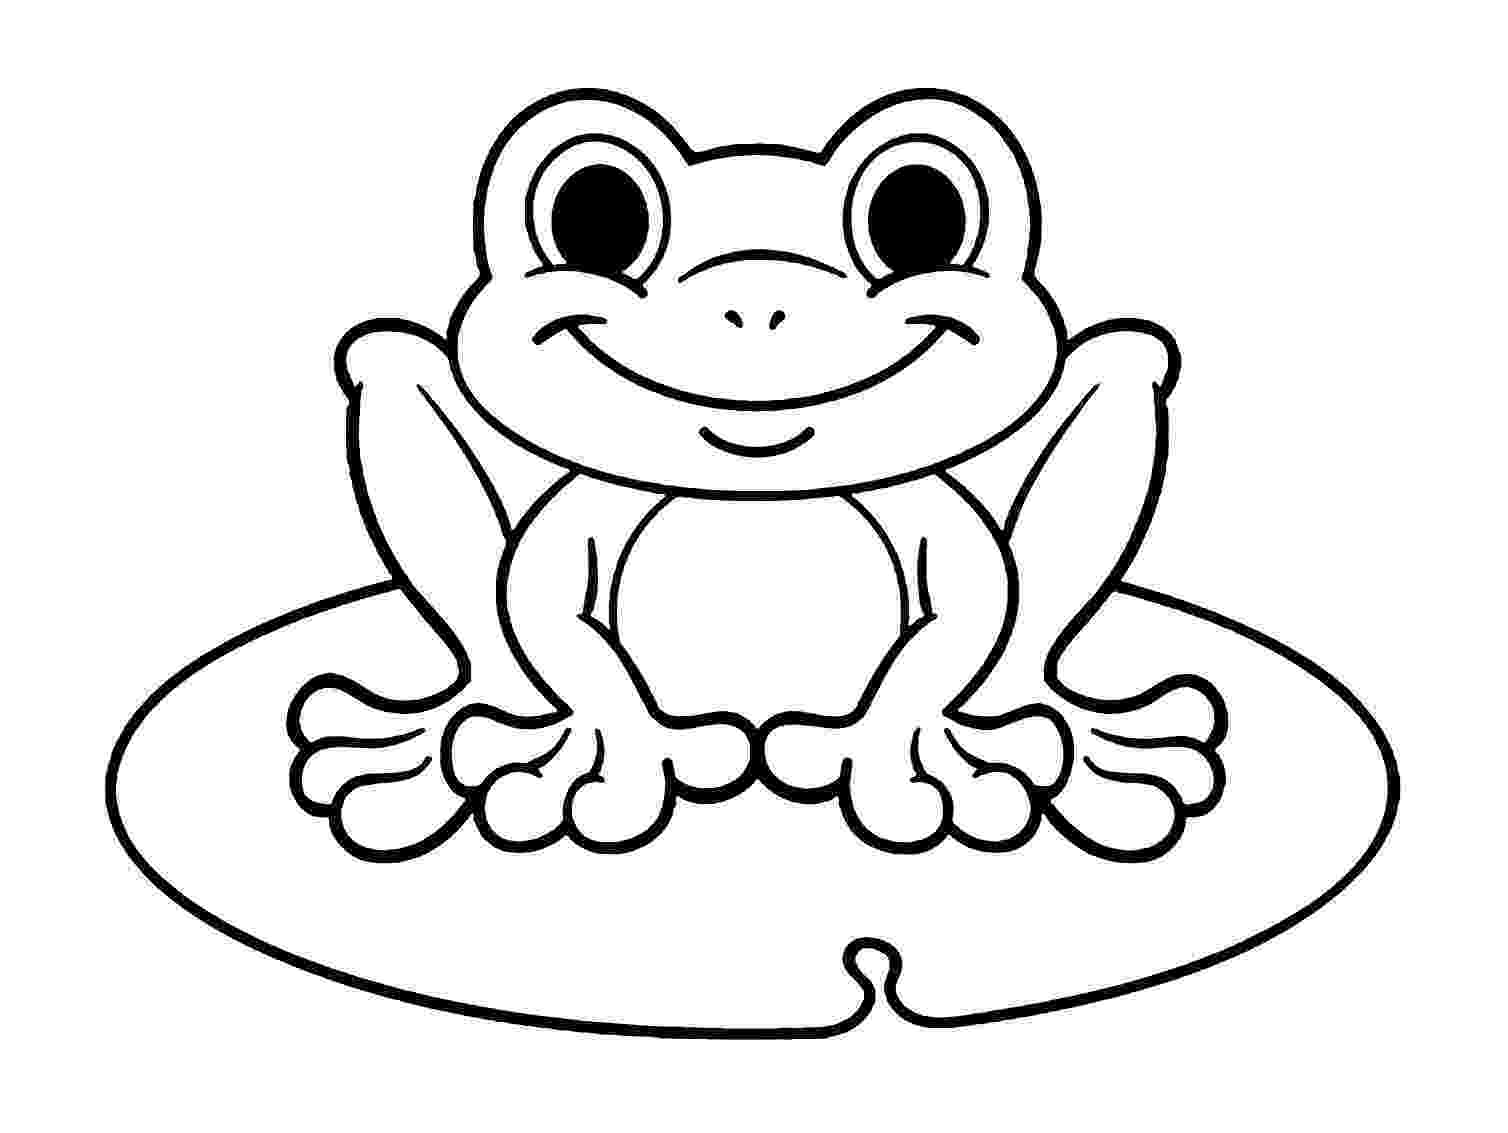 frog to color frogs to print for free frogs kids coloring pages color to frog